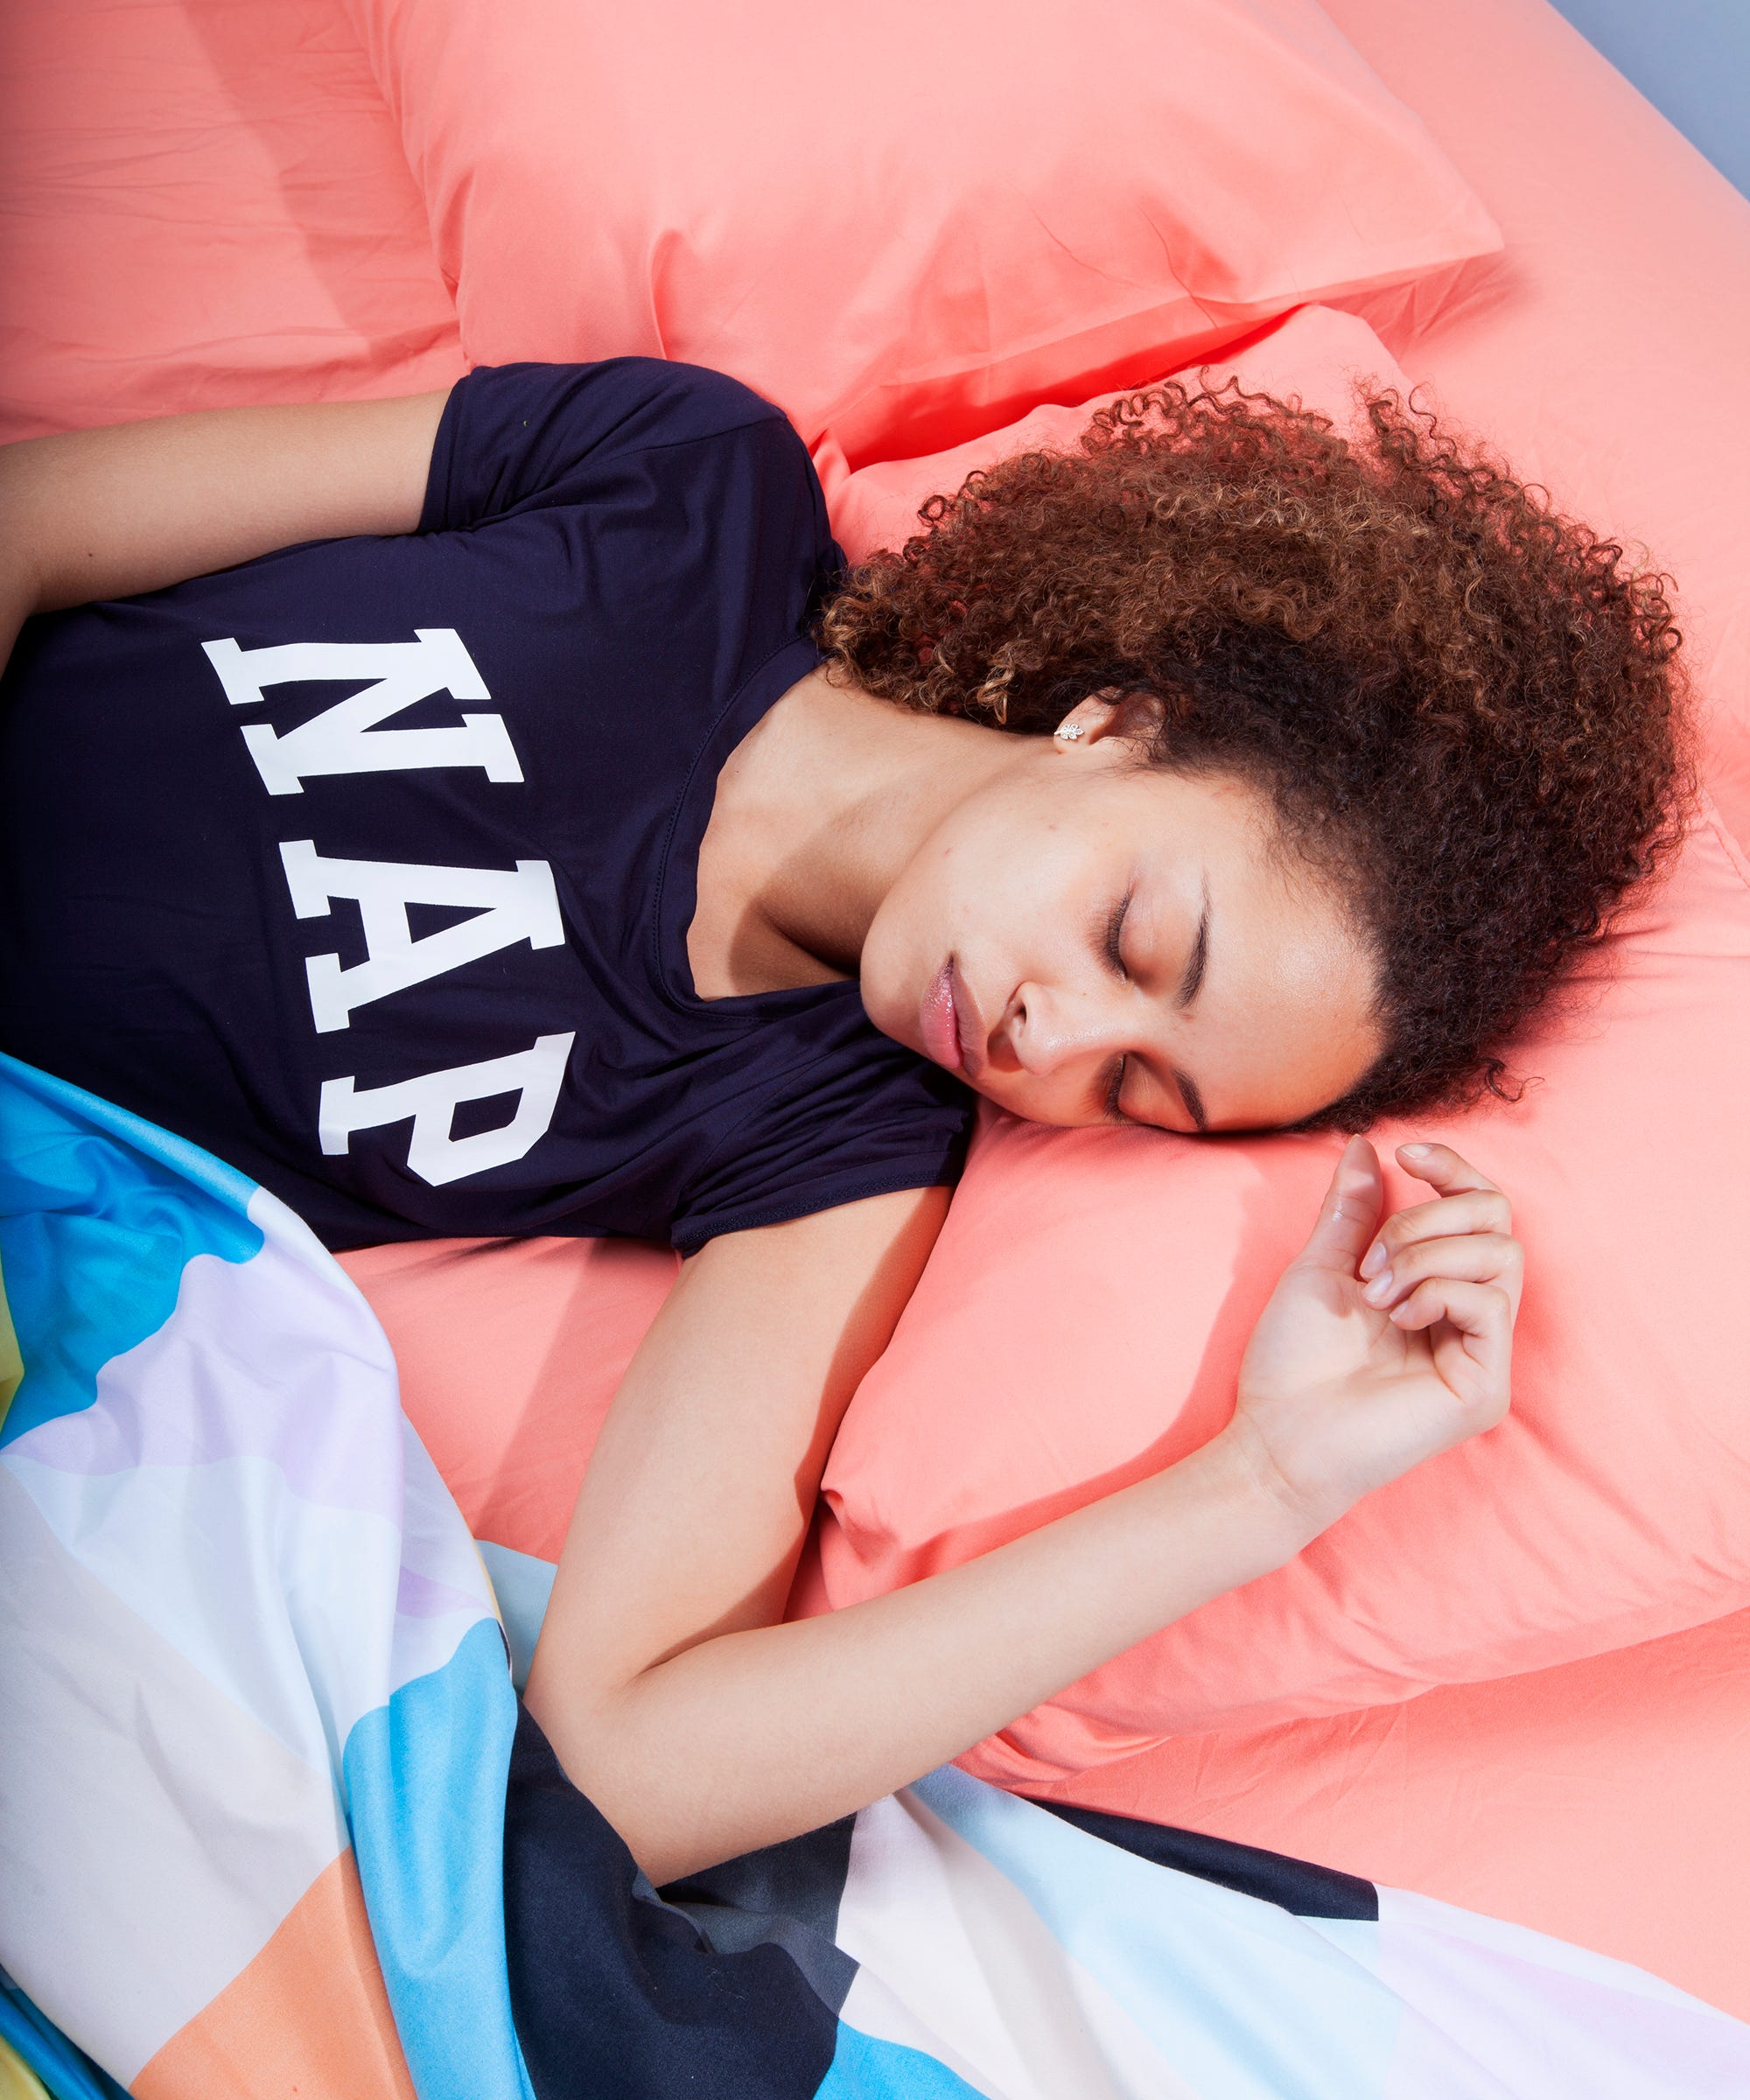 Trouble Sleeping? Your Mattress Might Be To Blame